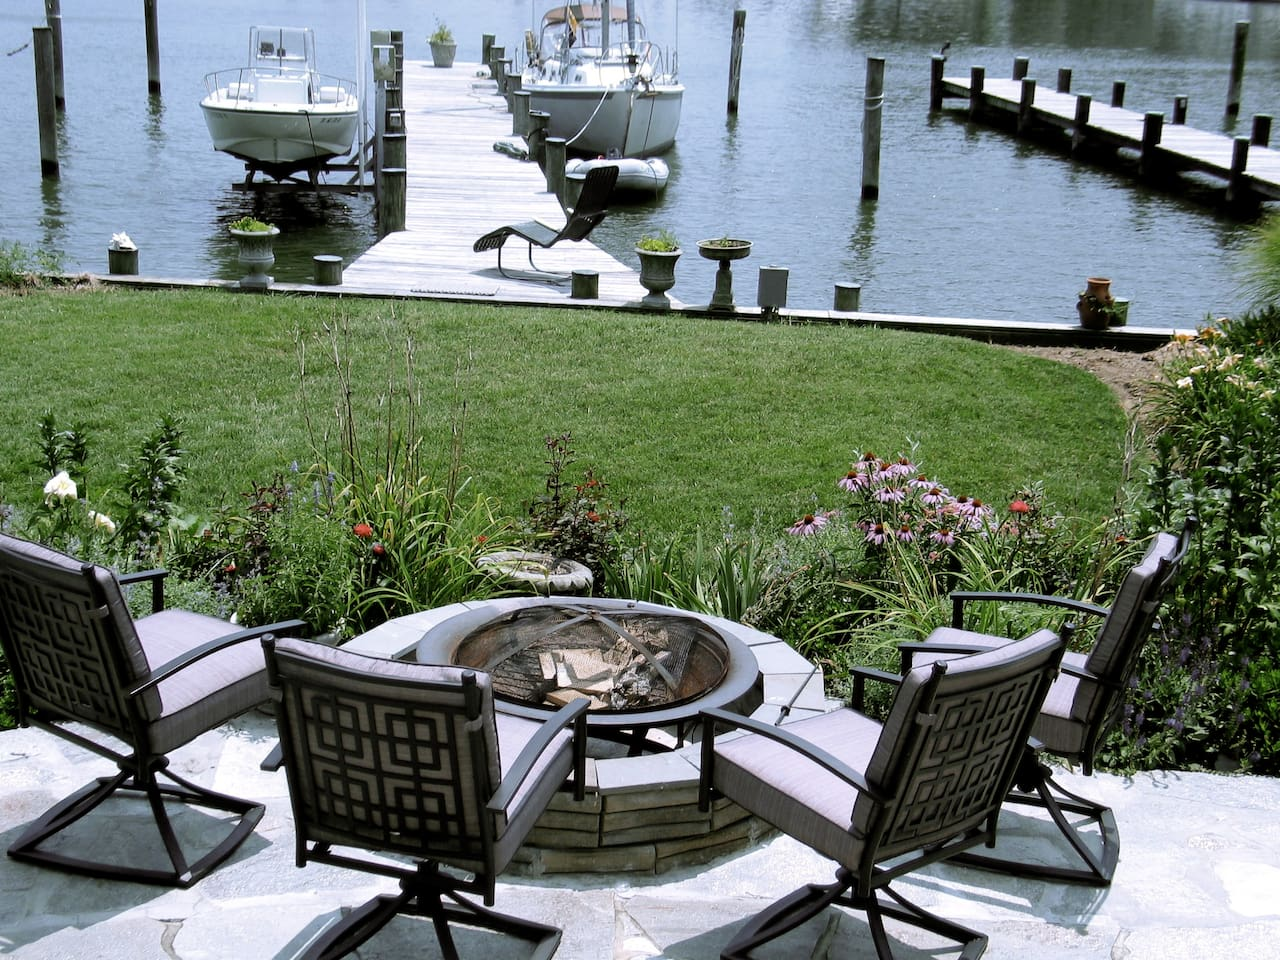 Gas fire pit keeps you warm when enjoying the view on a cooler night.